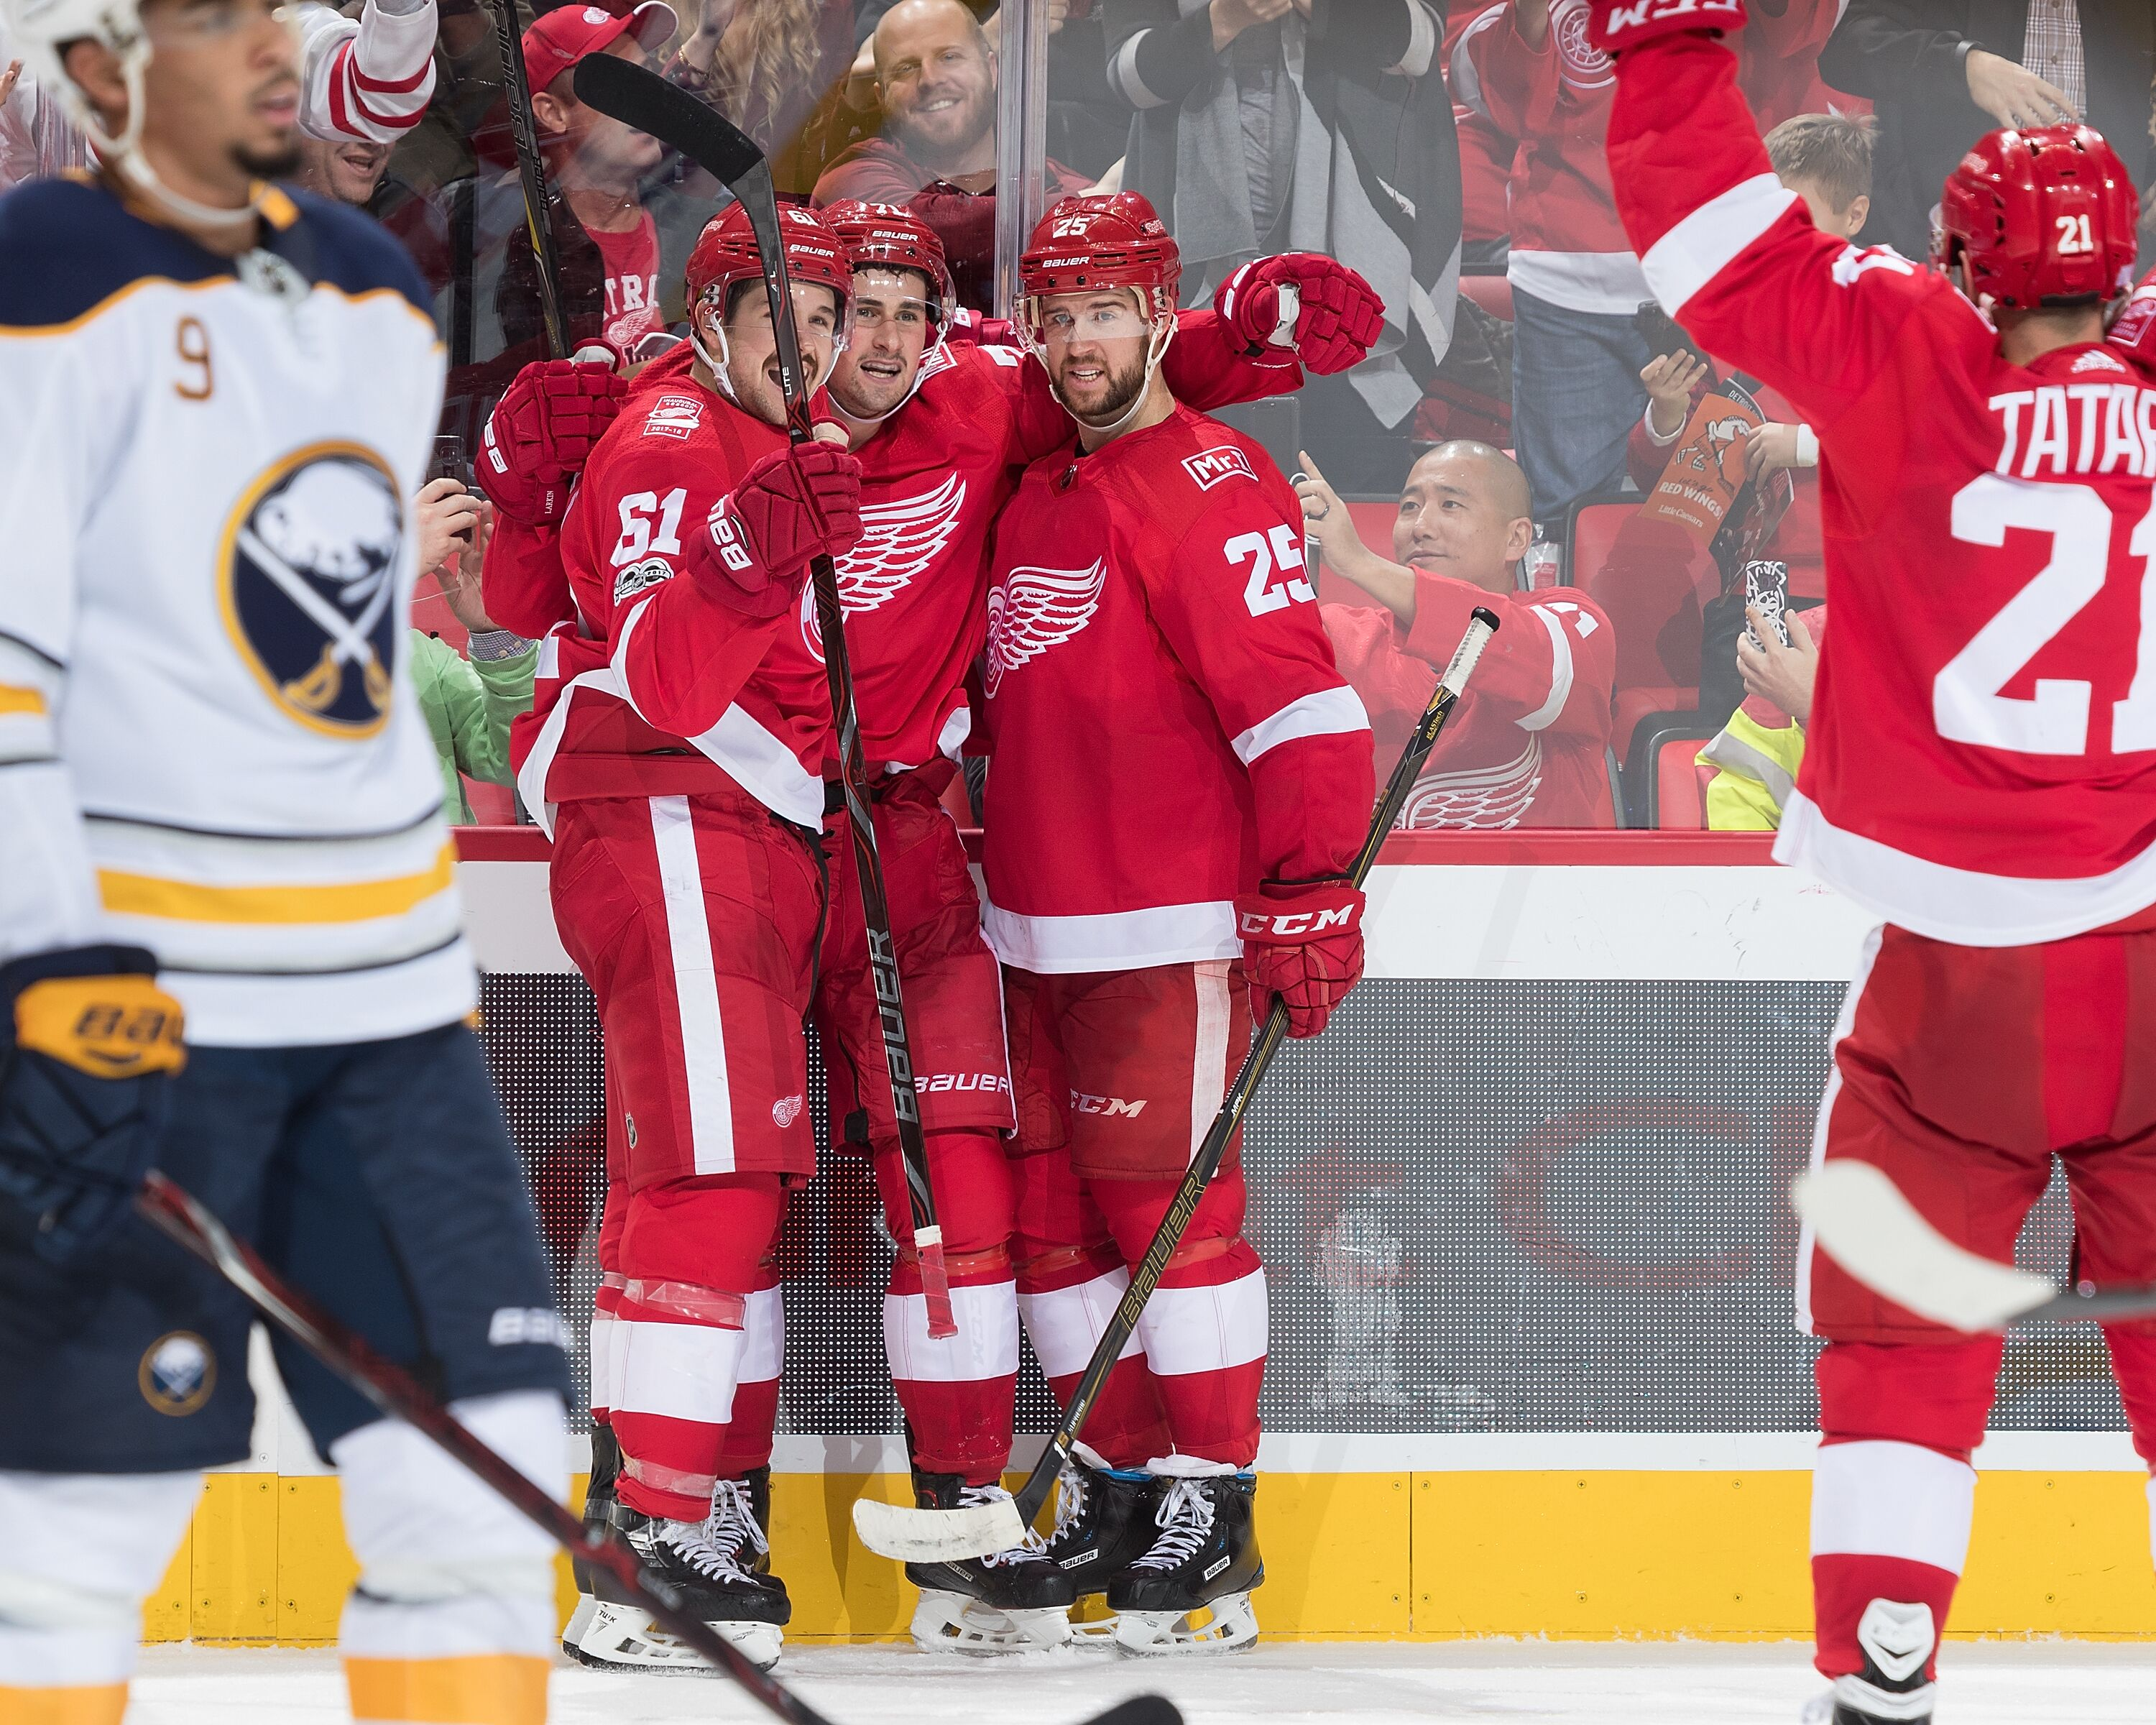 875532056-buffalo-sabres-v-detroit-red-wings.jpg